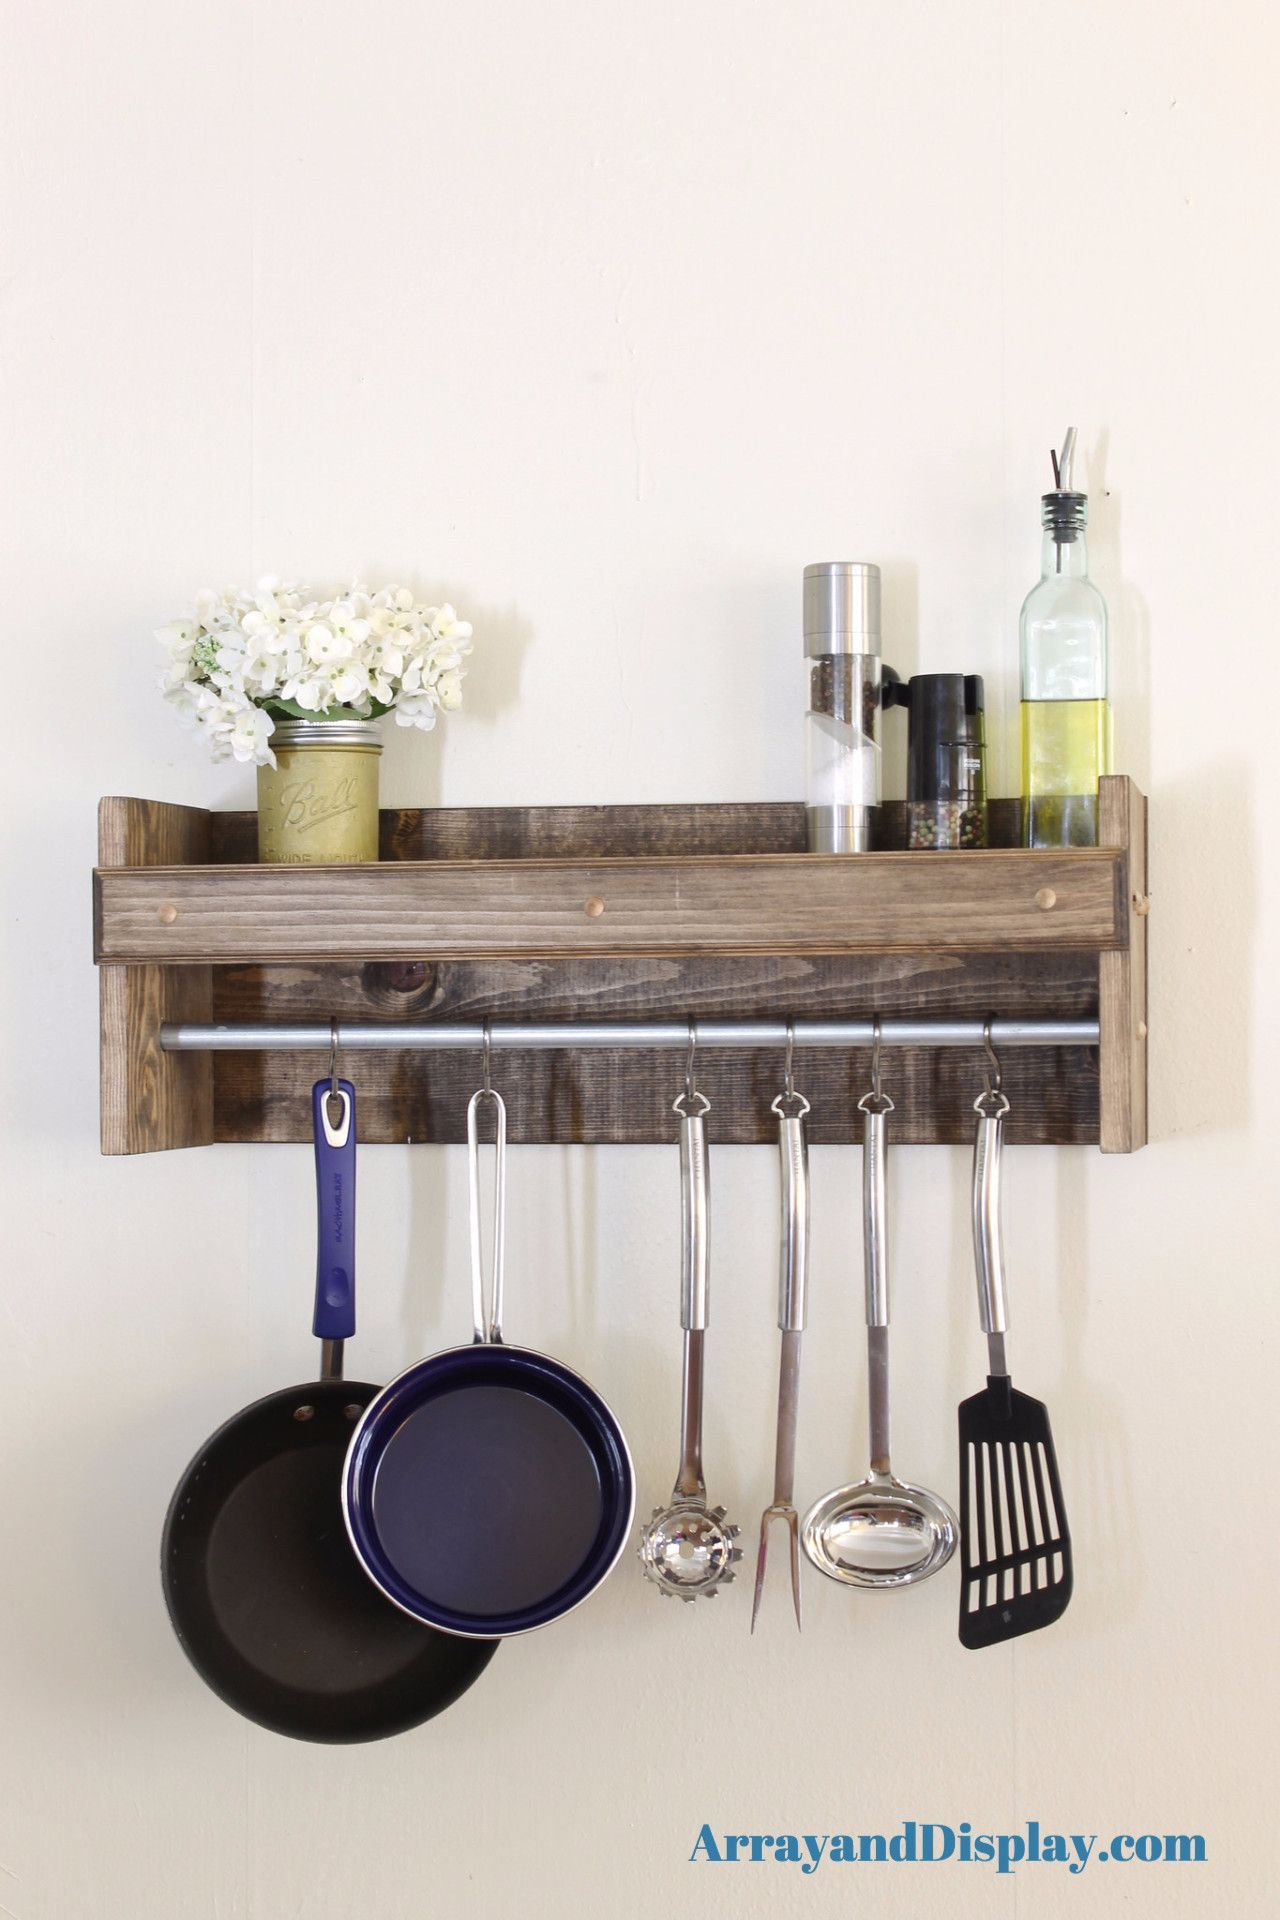 Kitchen Shelf Pot Rack Kitchen Shelf Decor Kitchen Shelves